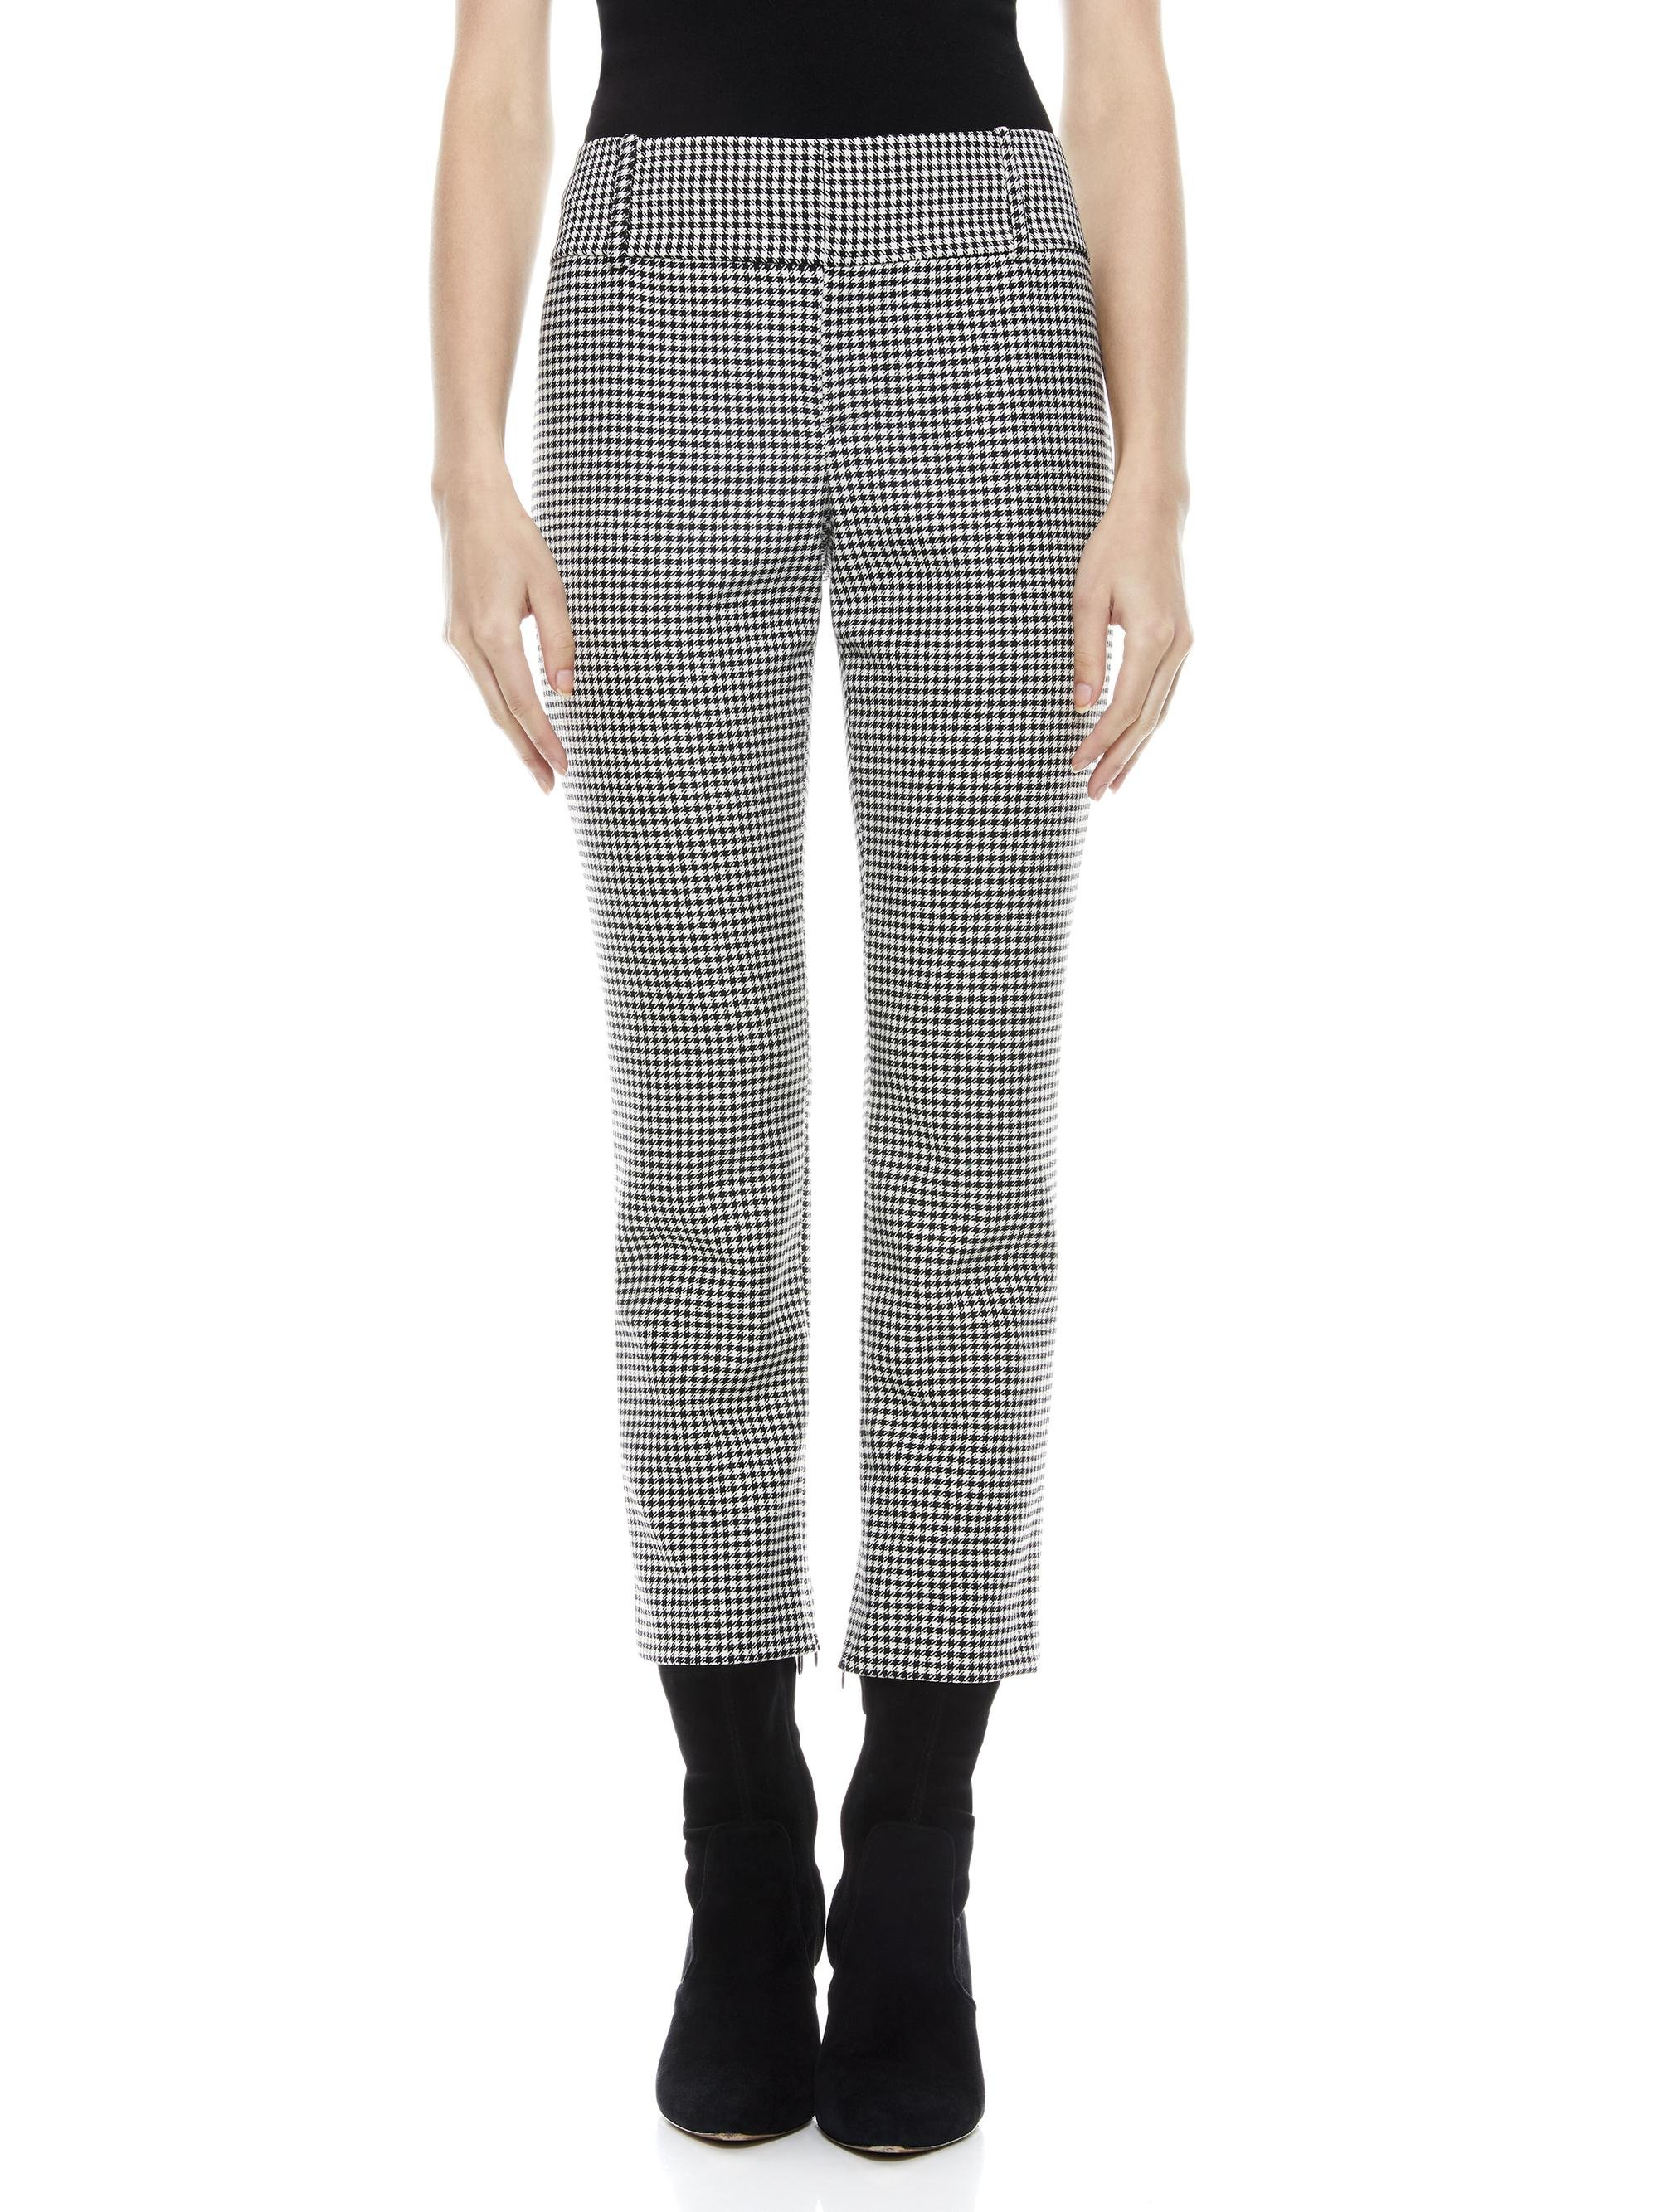 STACEY SLIM TROUSER